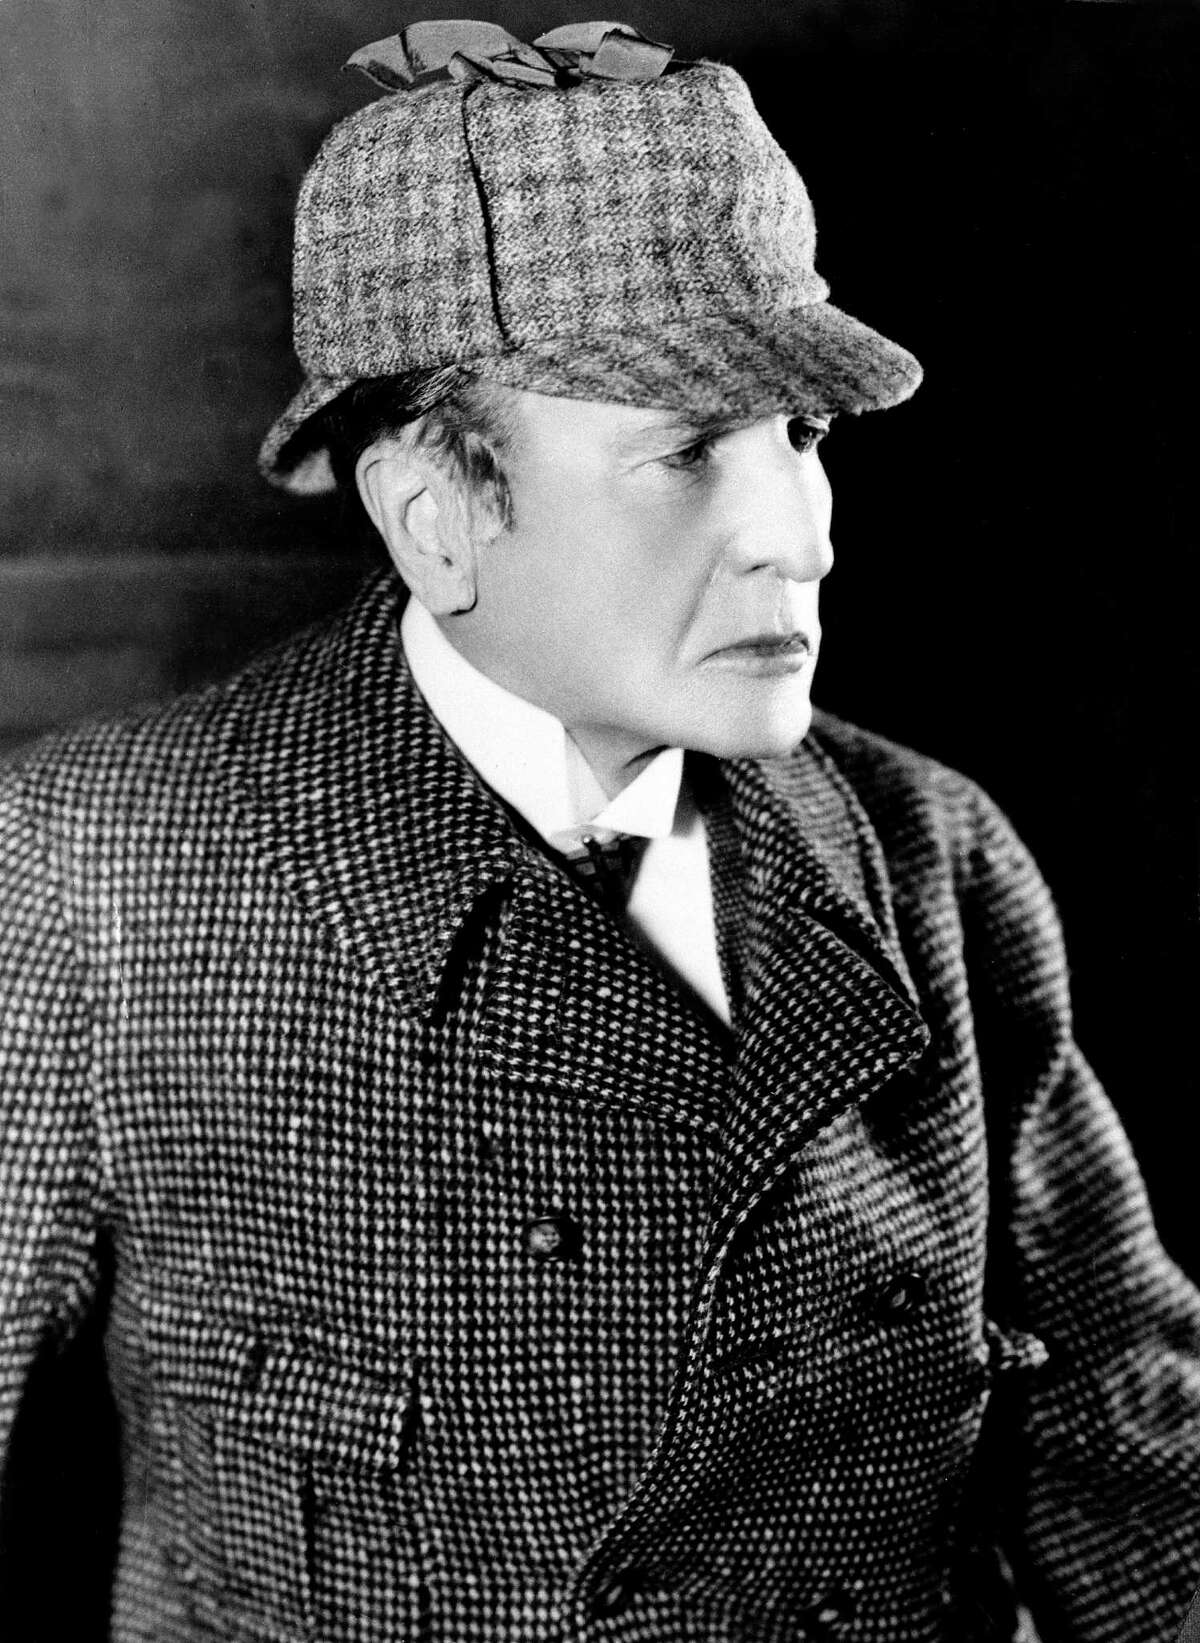 American actor and playwright William Gillette is shown as Sherlock Holmes in this undated photo. (AP Photo) HOUCHRON CAPTION (10/09/2003): ACTOR WILLIAM GILLETTE ADAPTED THREE SHERLOCK HOLMES STORIES INTO THE 1899 PLAY THAT THE ALLEY THEATRE WILL PRESENT. GILLETTE HIMSELF STARRED IN NUMEROUS PRODUCTIONS.